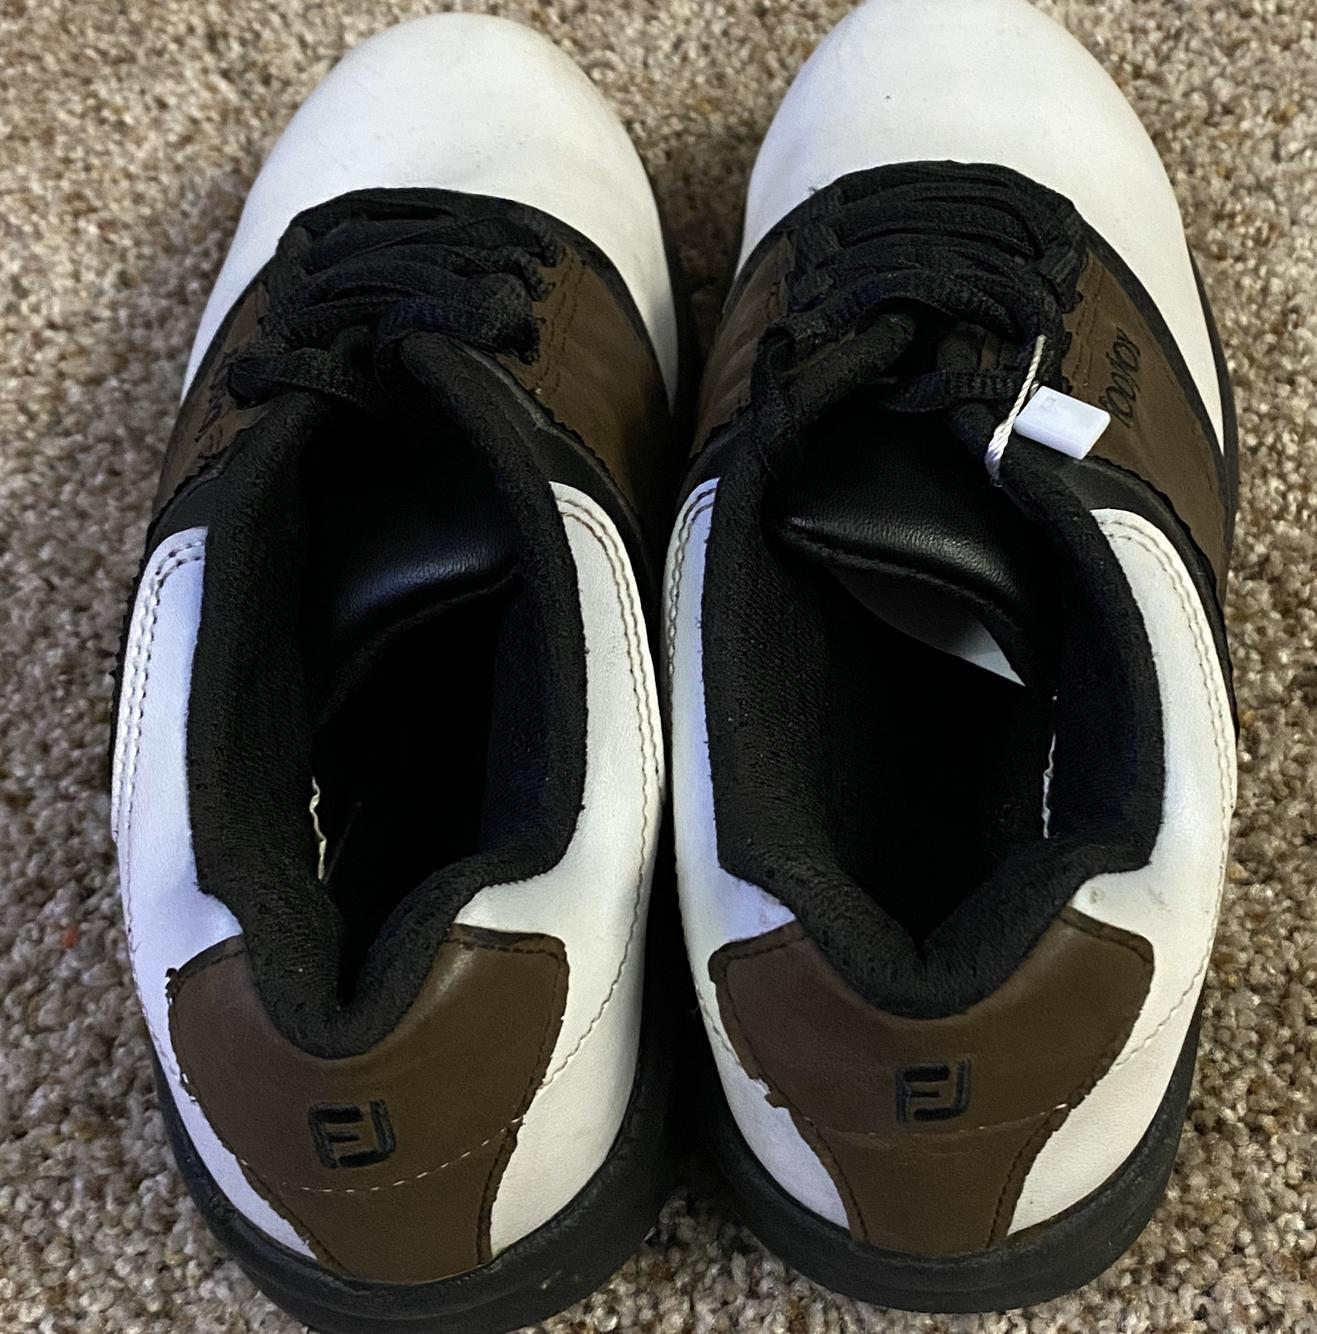 kids golf shoes size 3